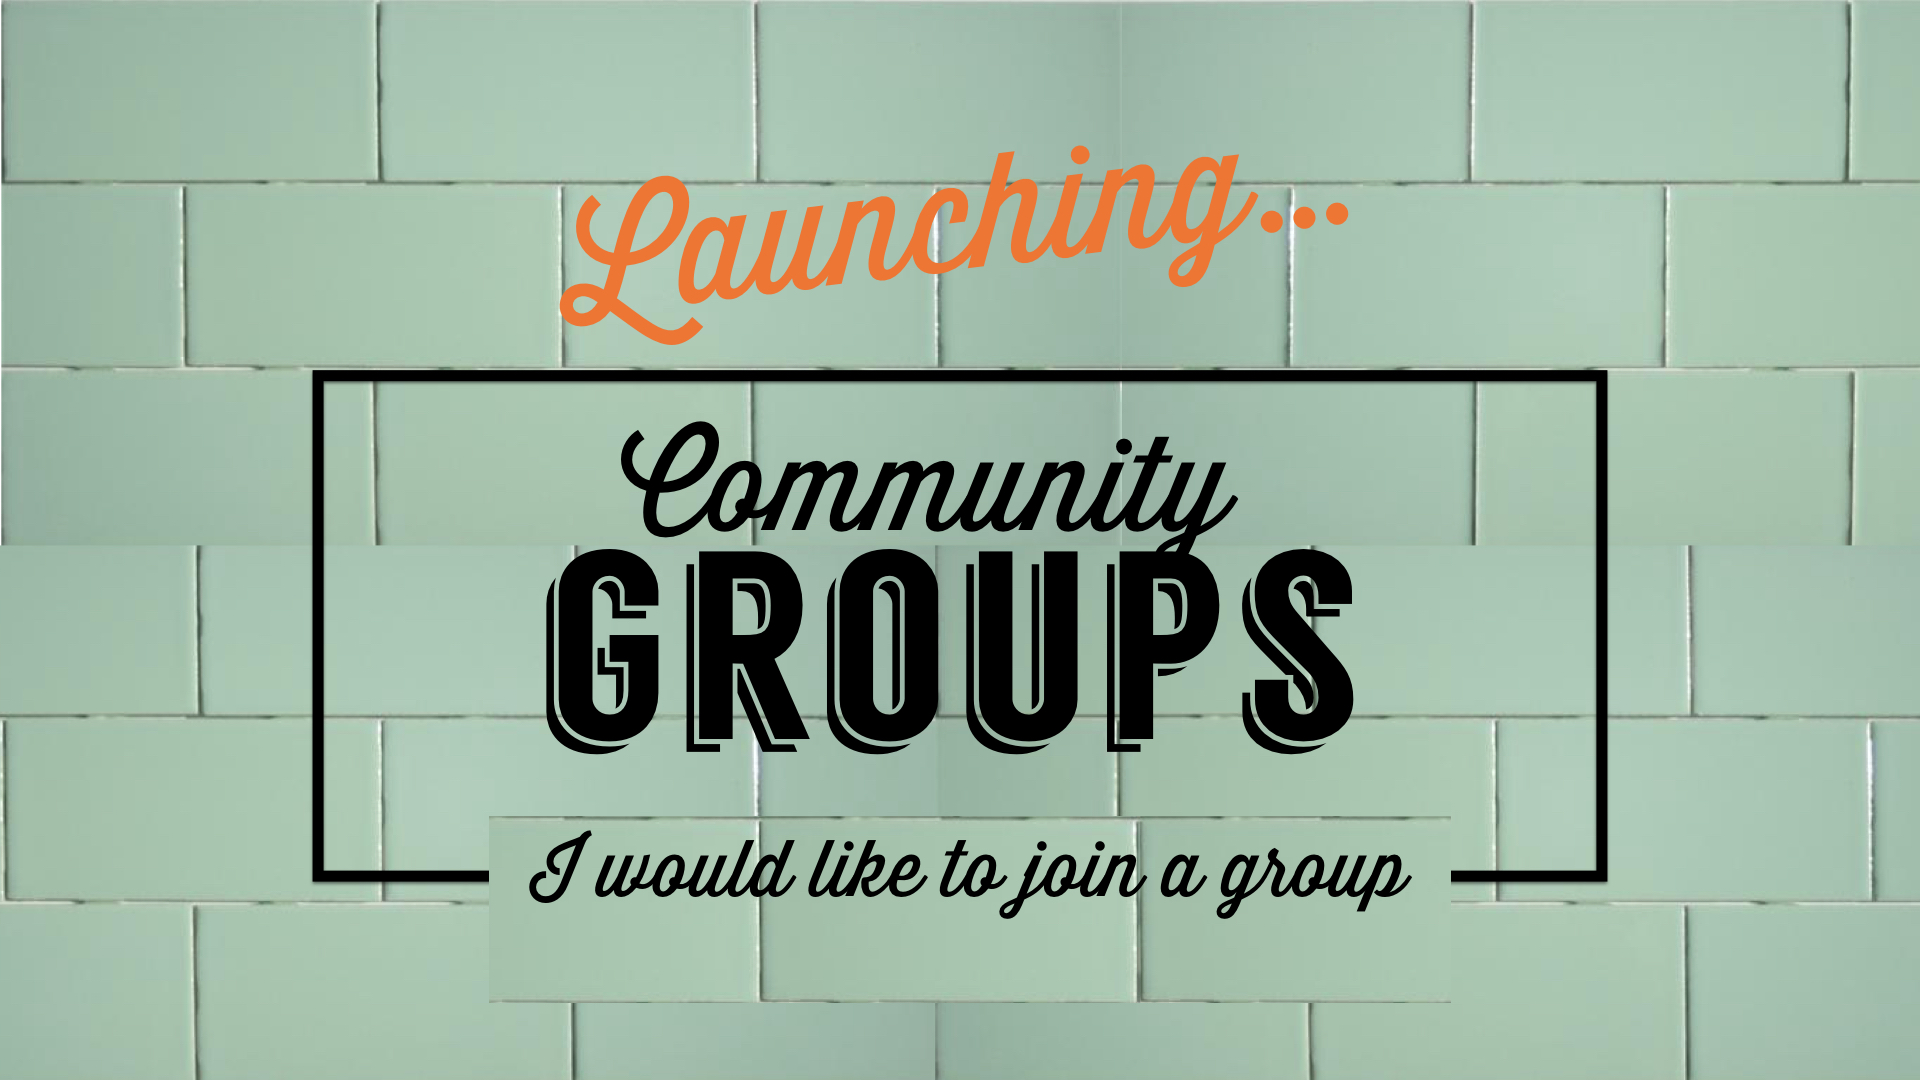 Learn more about Community Groups